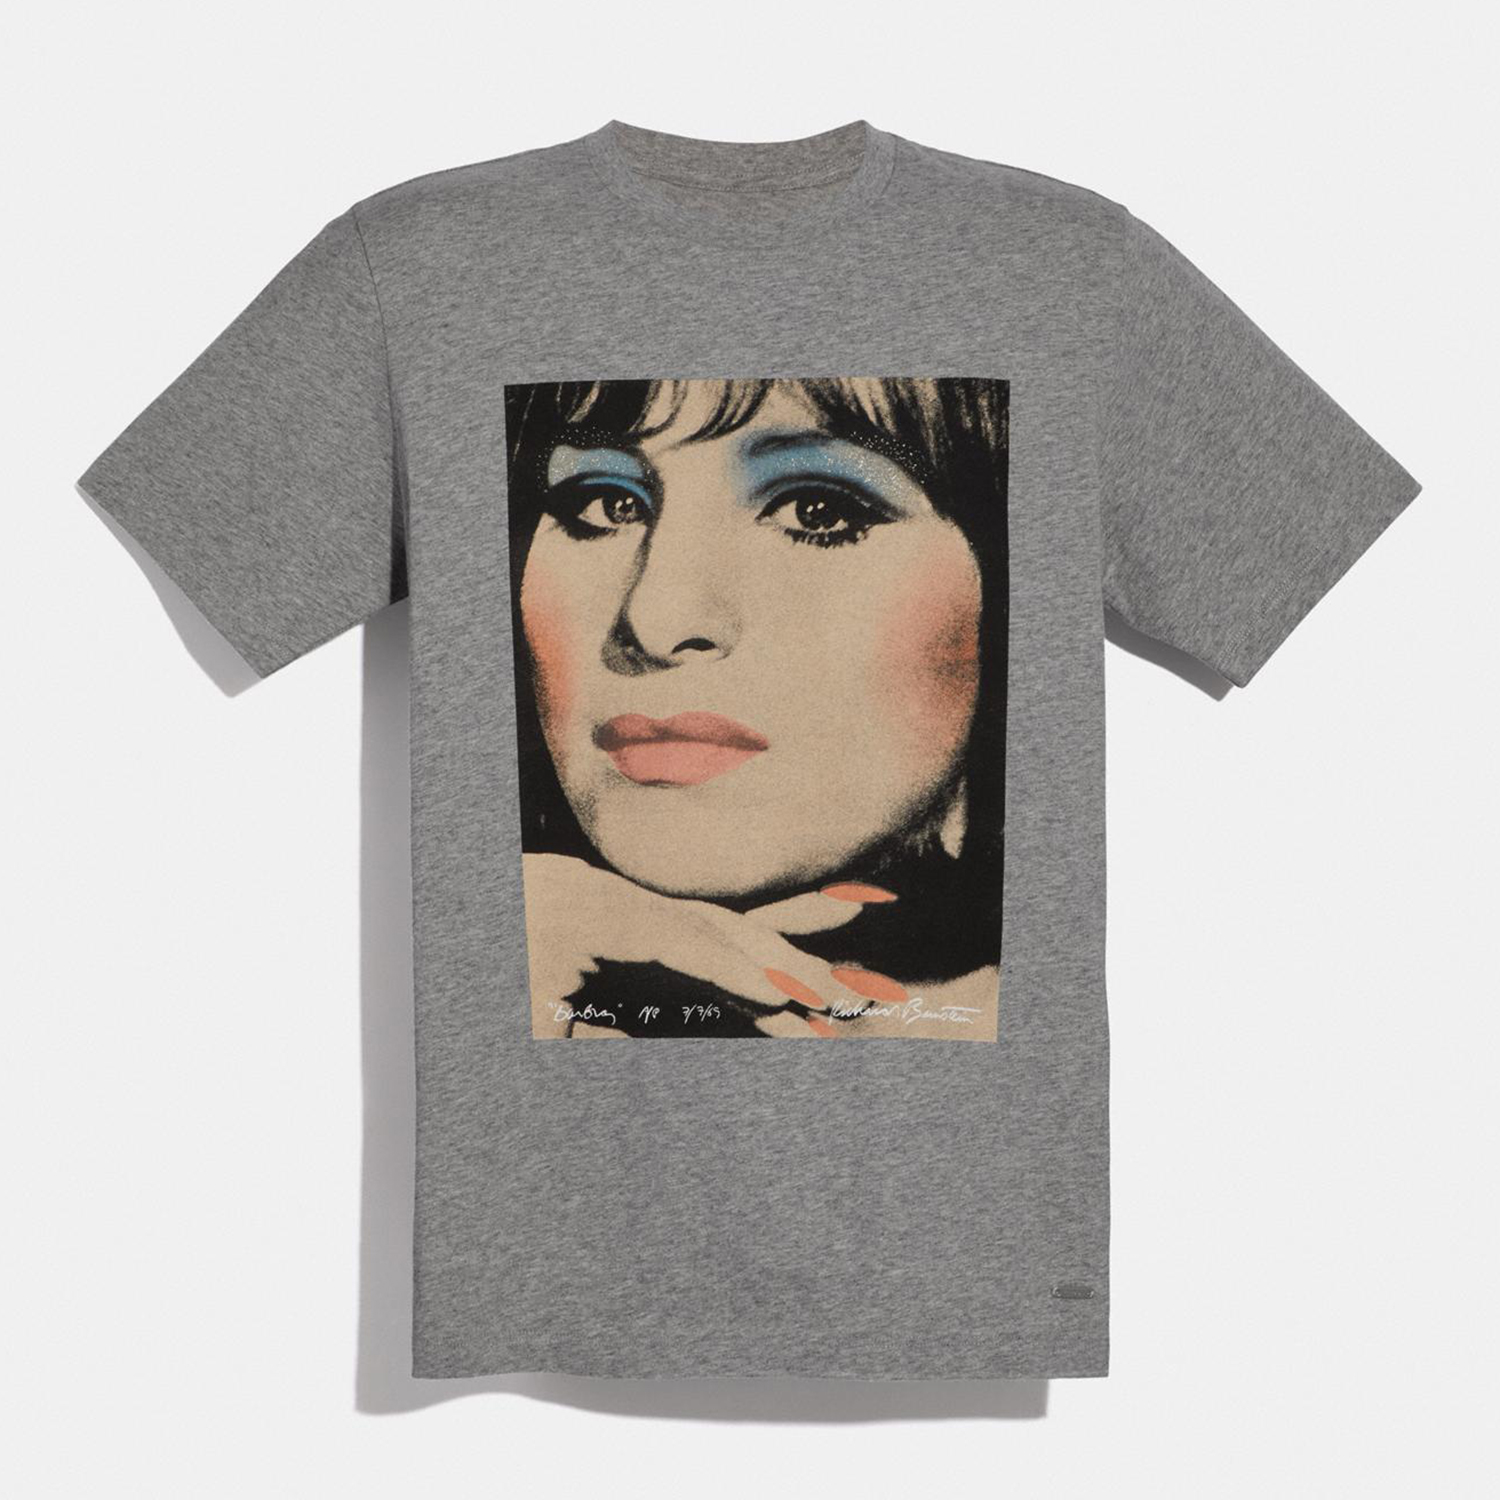 COACH X Richard Bernstein T-shirt With Barbra Streisand Light Heather Grey